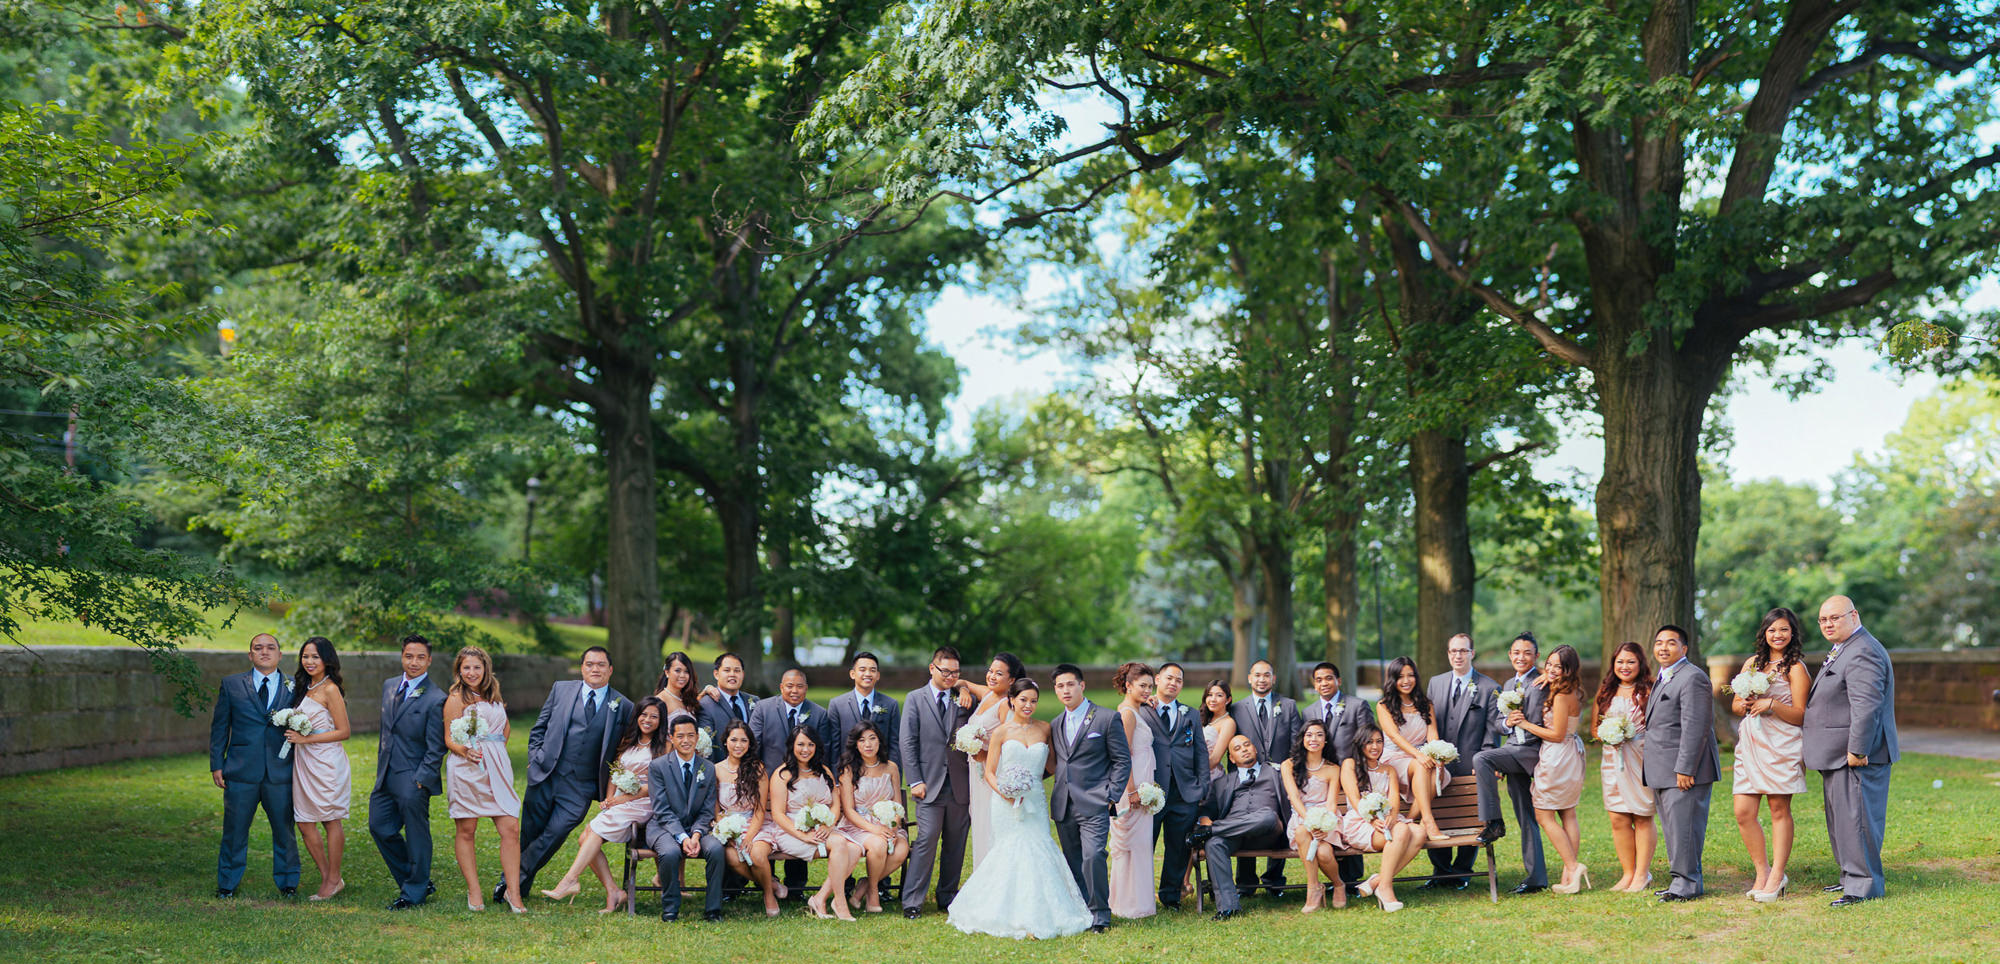 Epic huge wedding party group portrait using the Brenizer Method, by the Brenizers